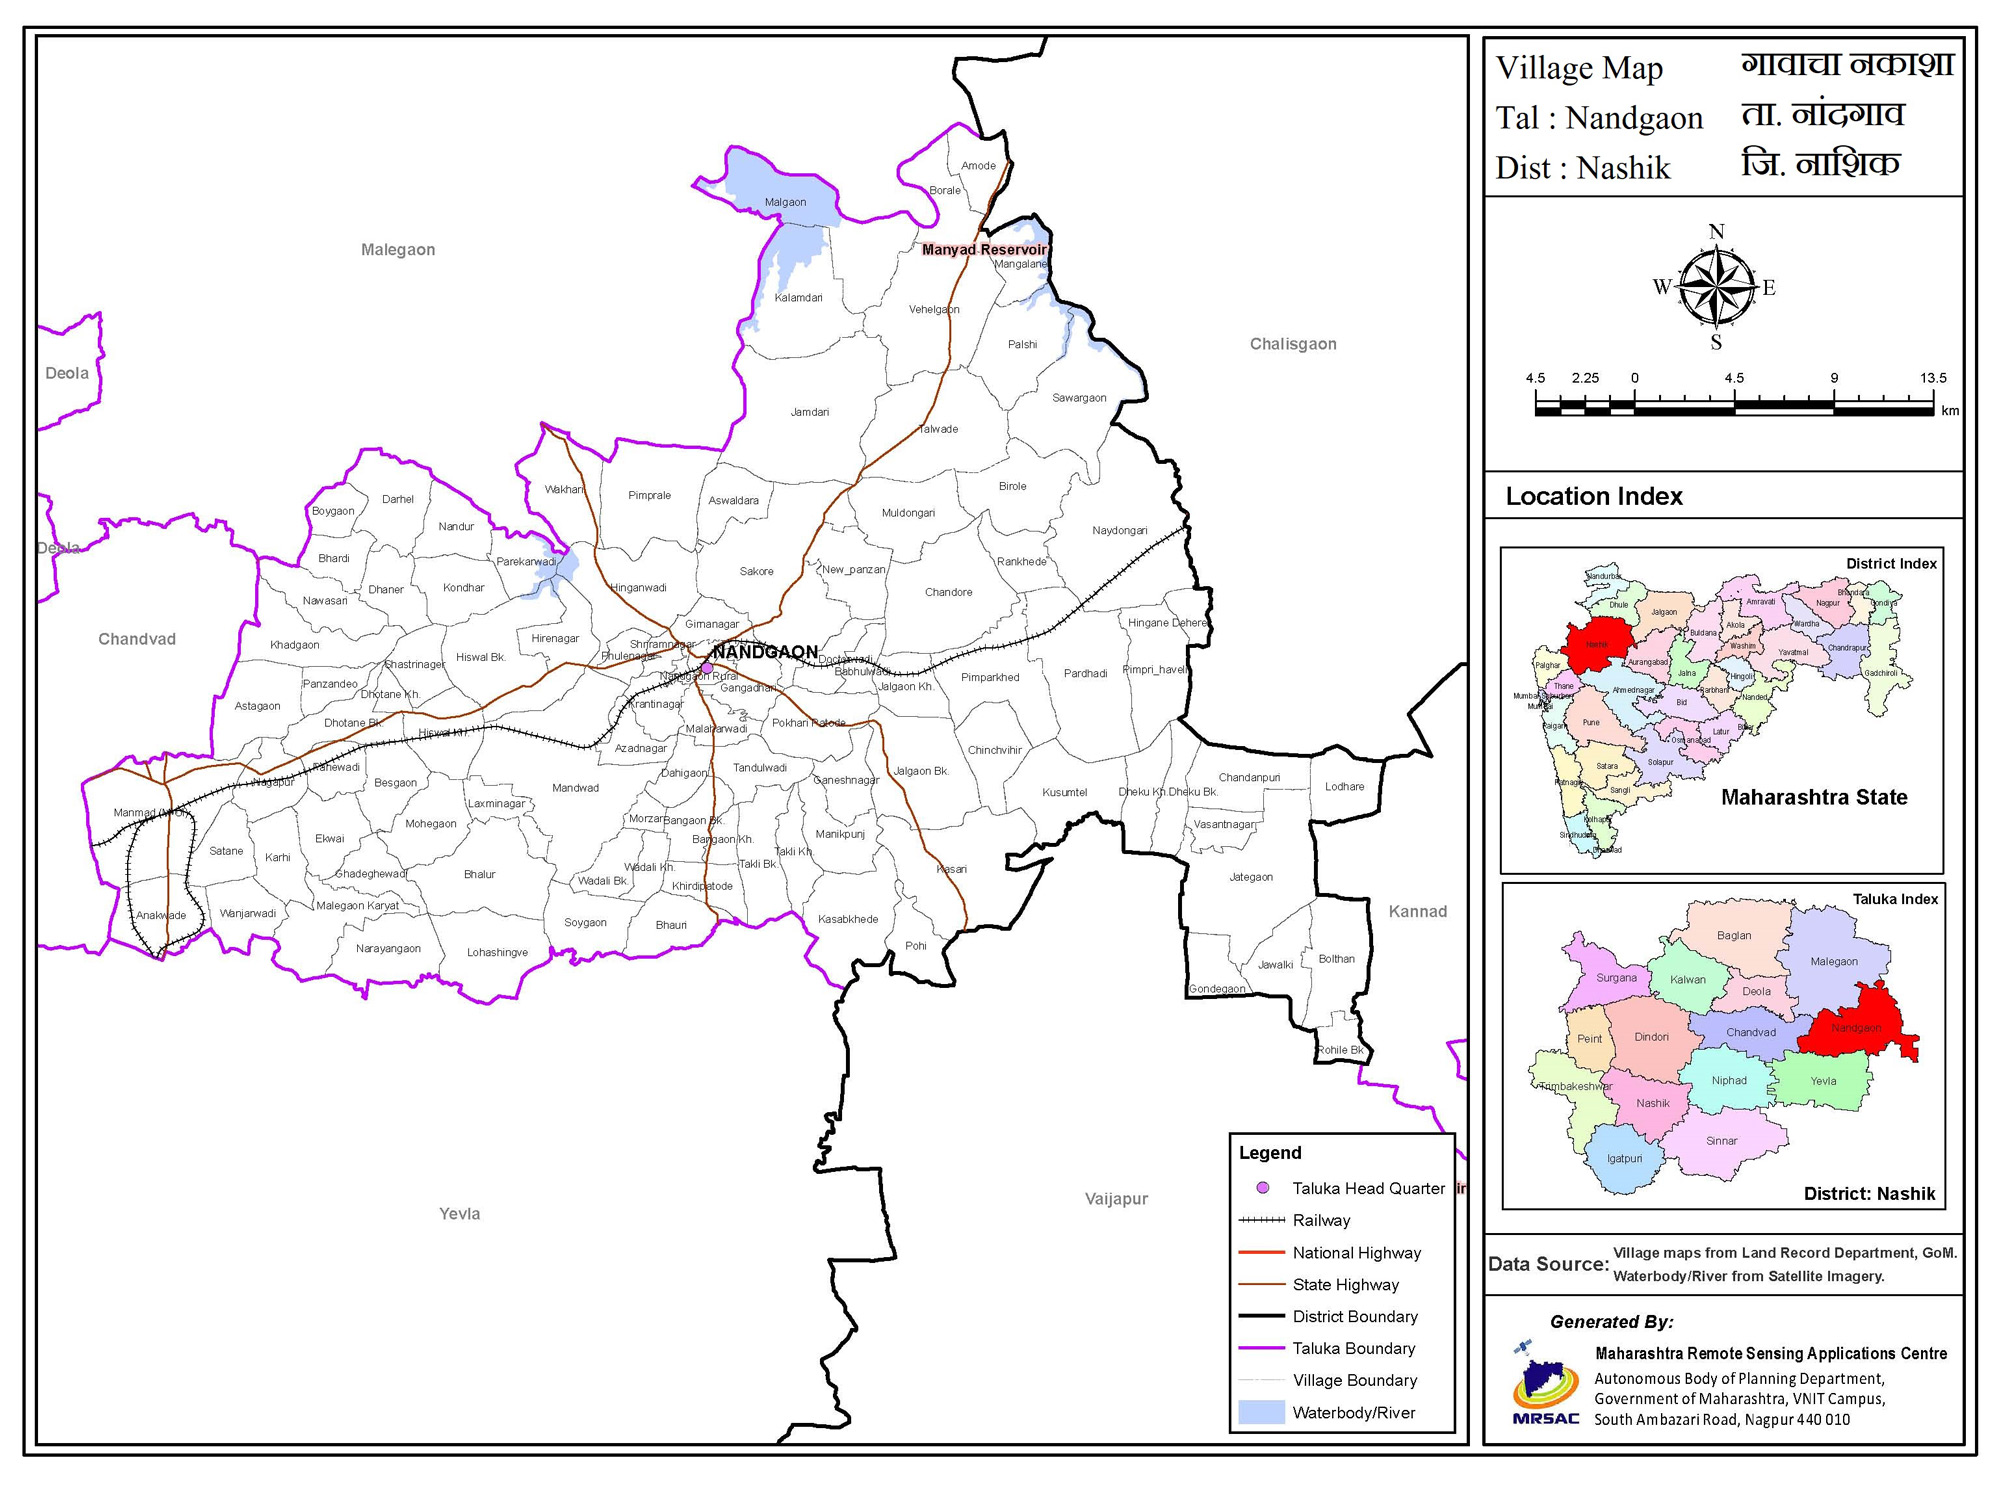 Map of Nandgaon